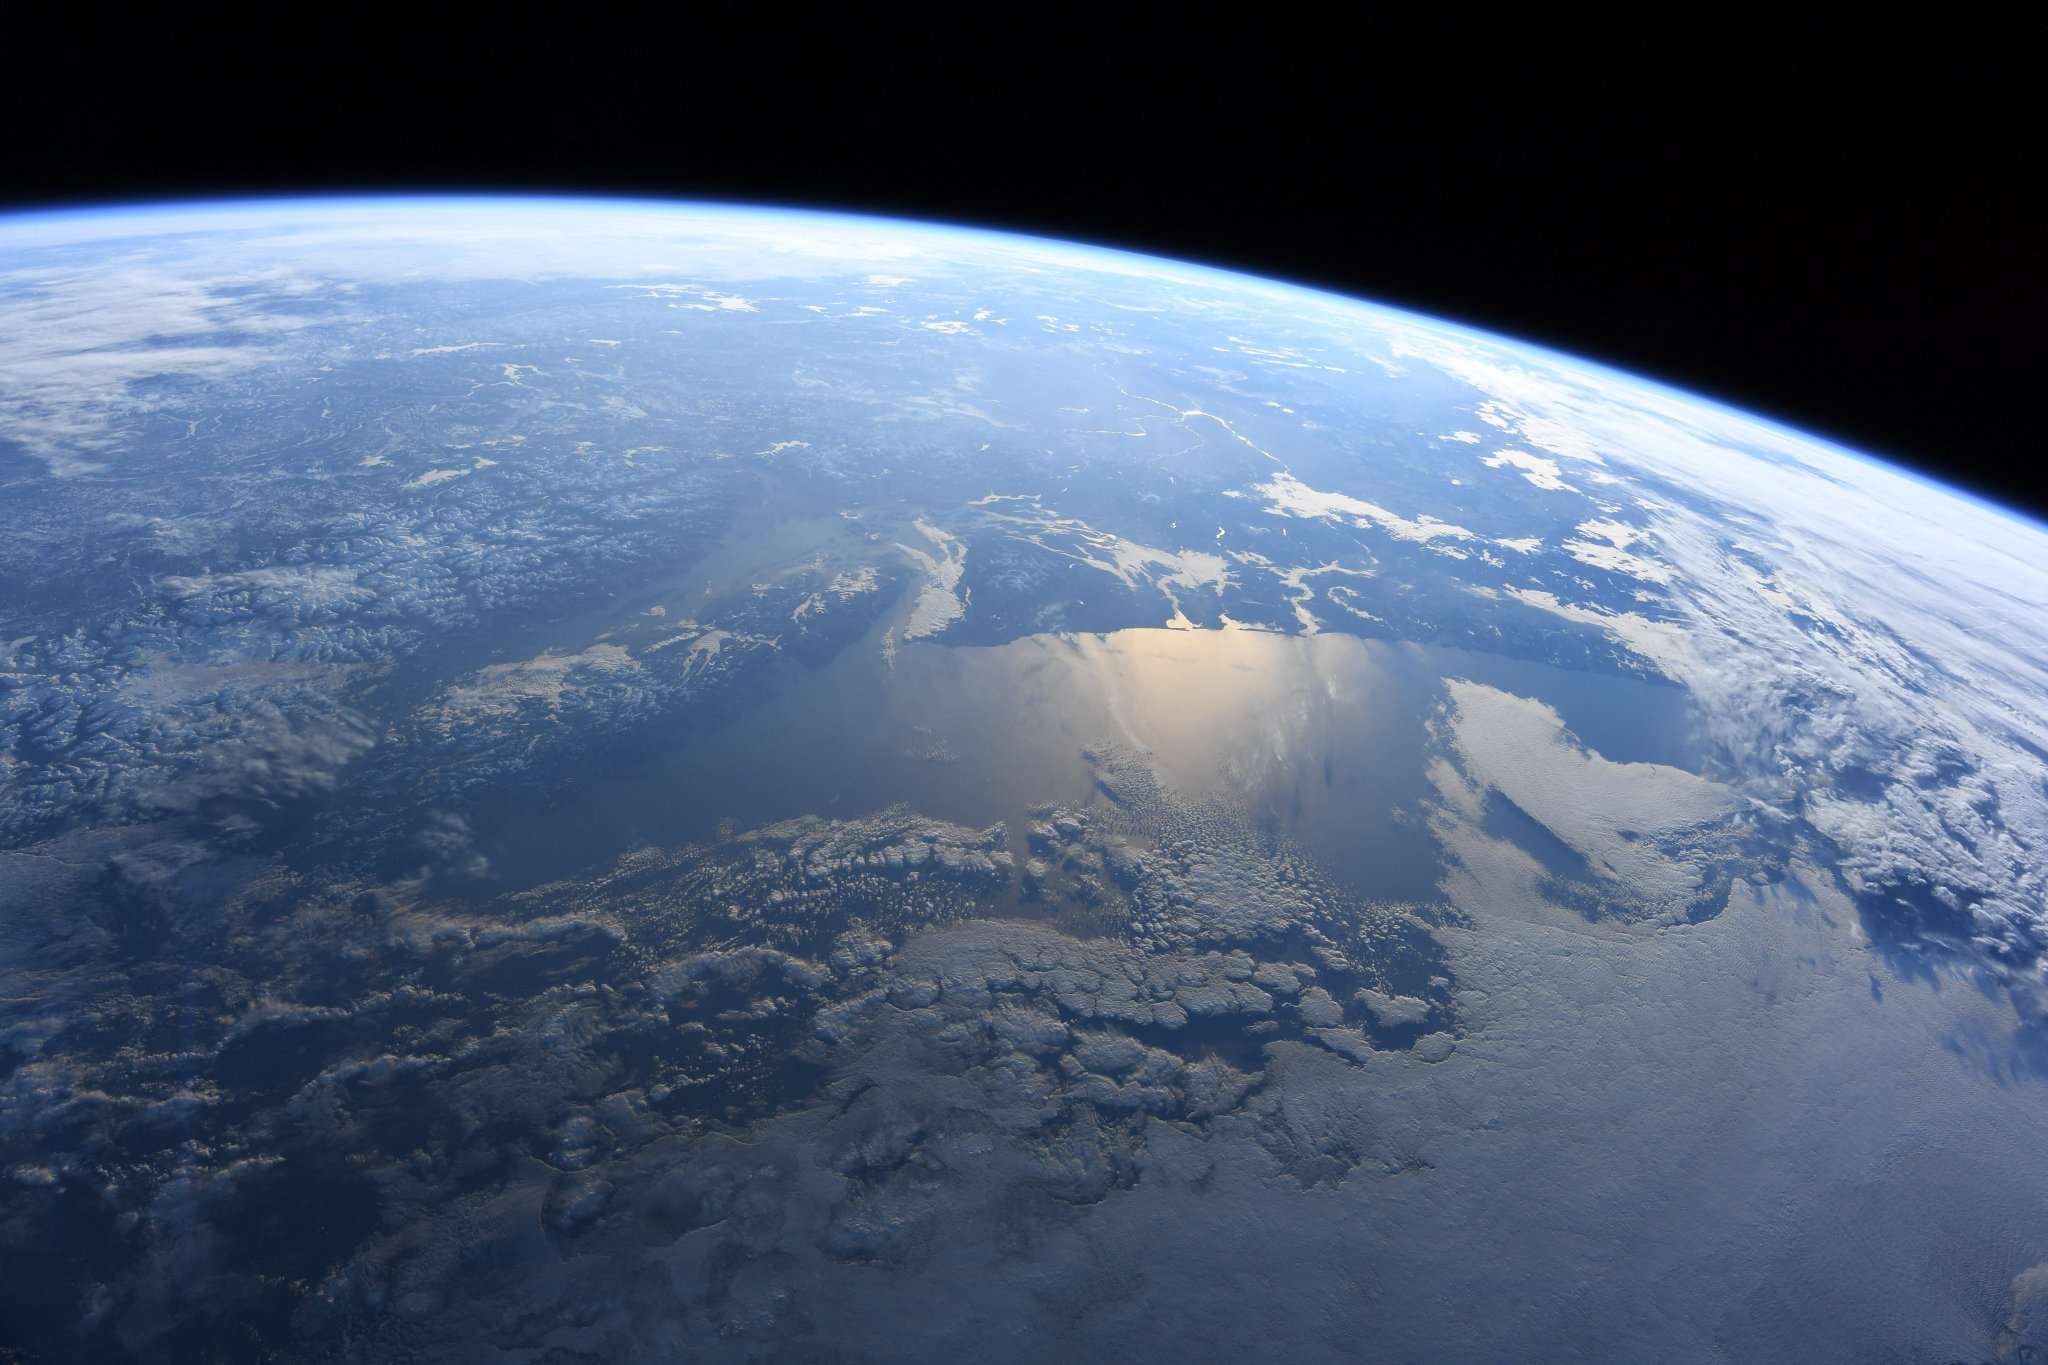 Astronaut takes gorgeous photo of the Northwest from space ...